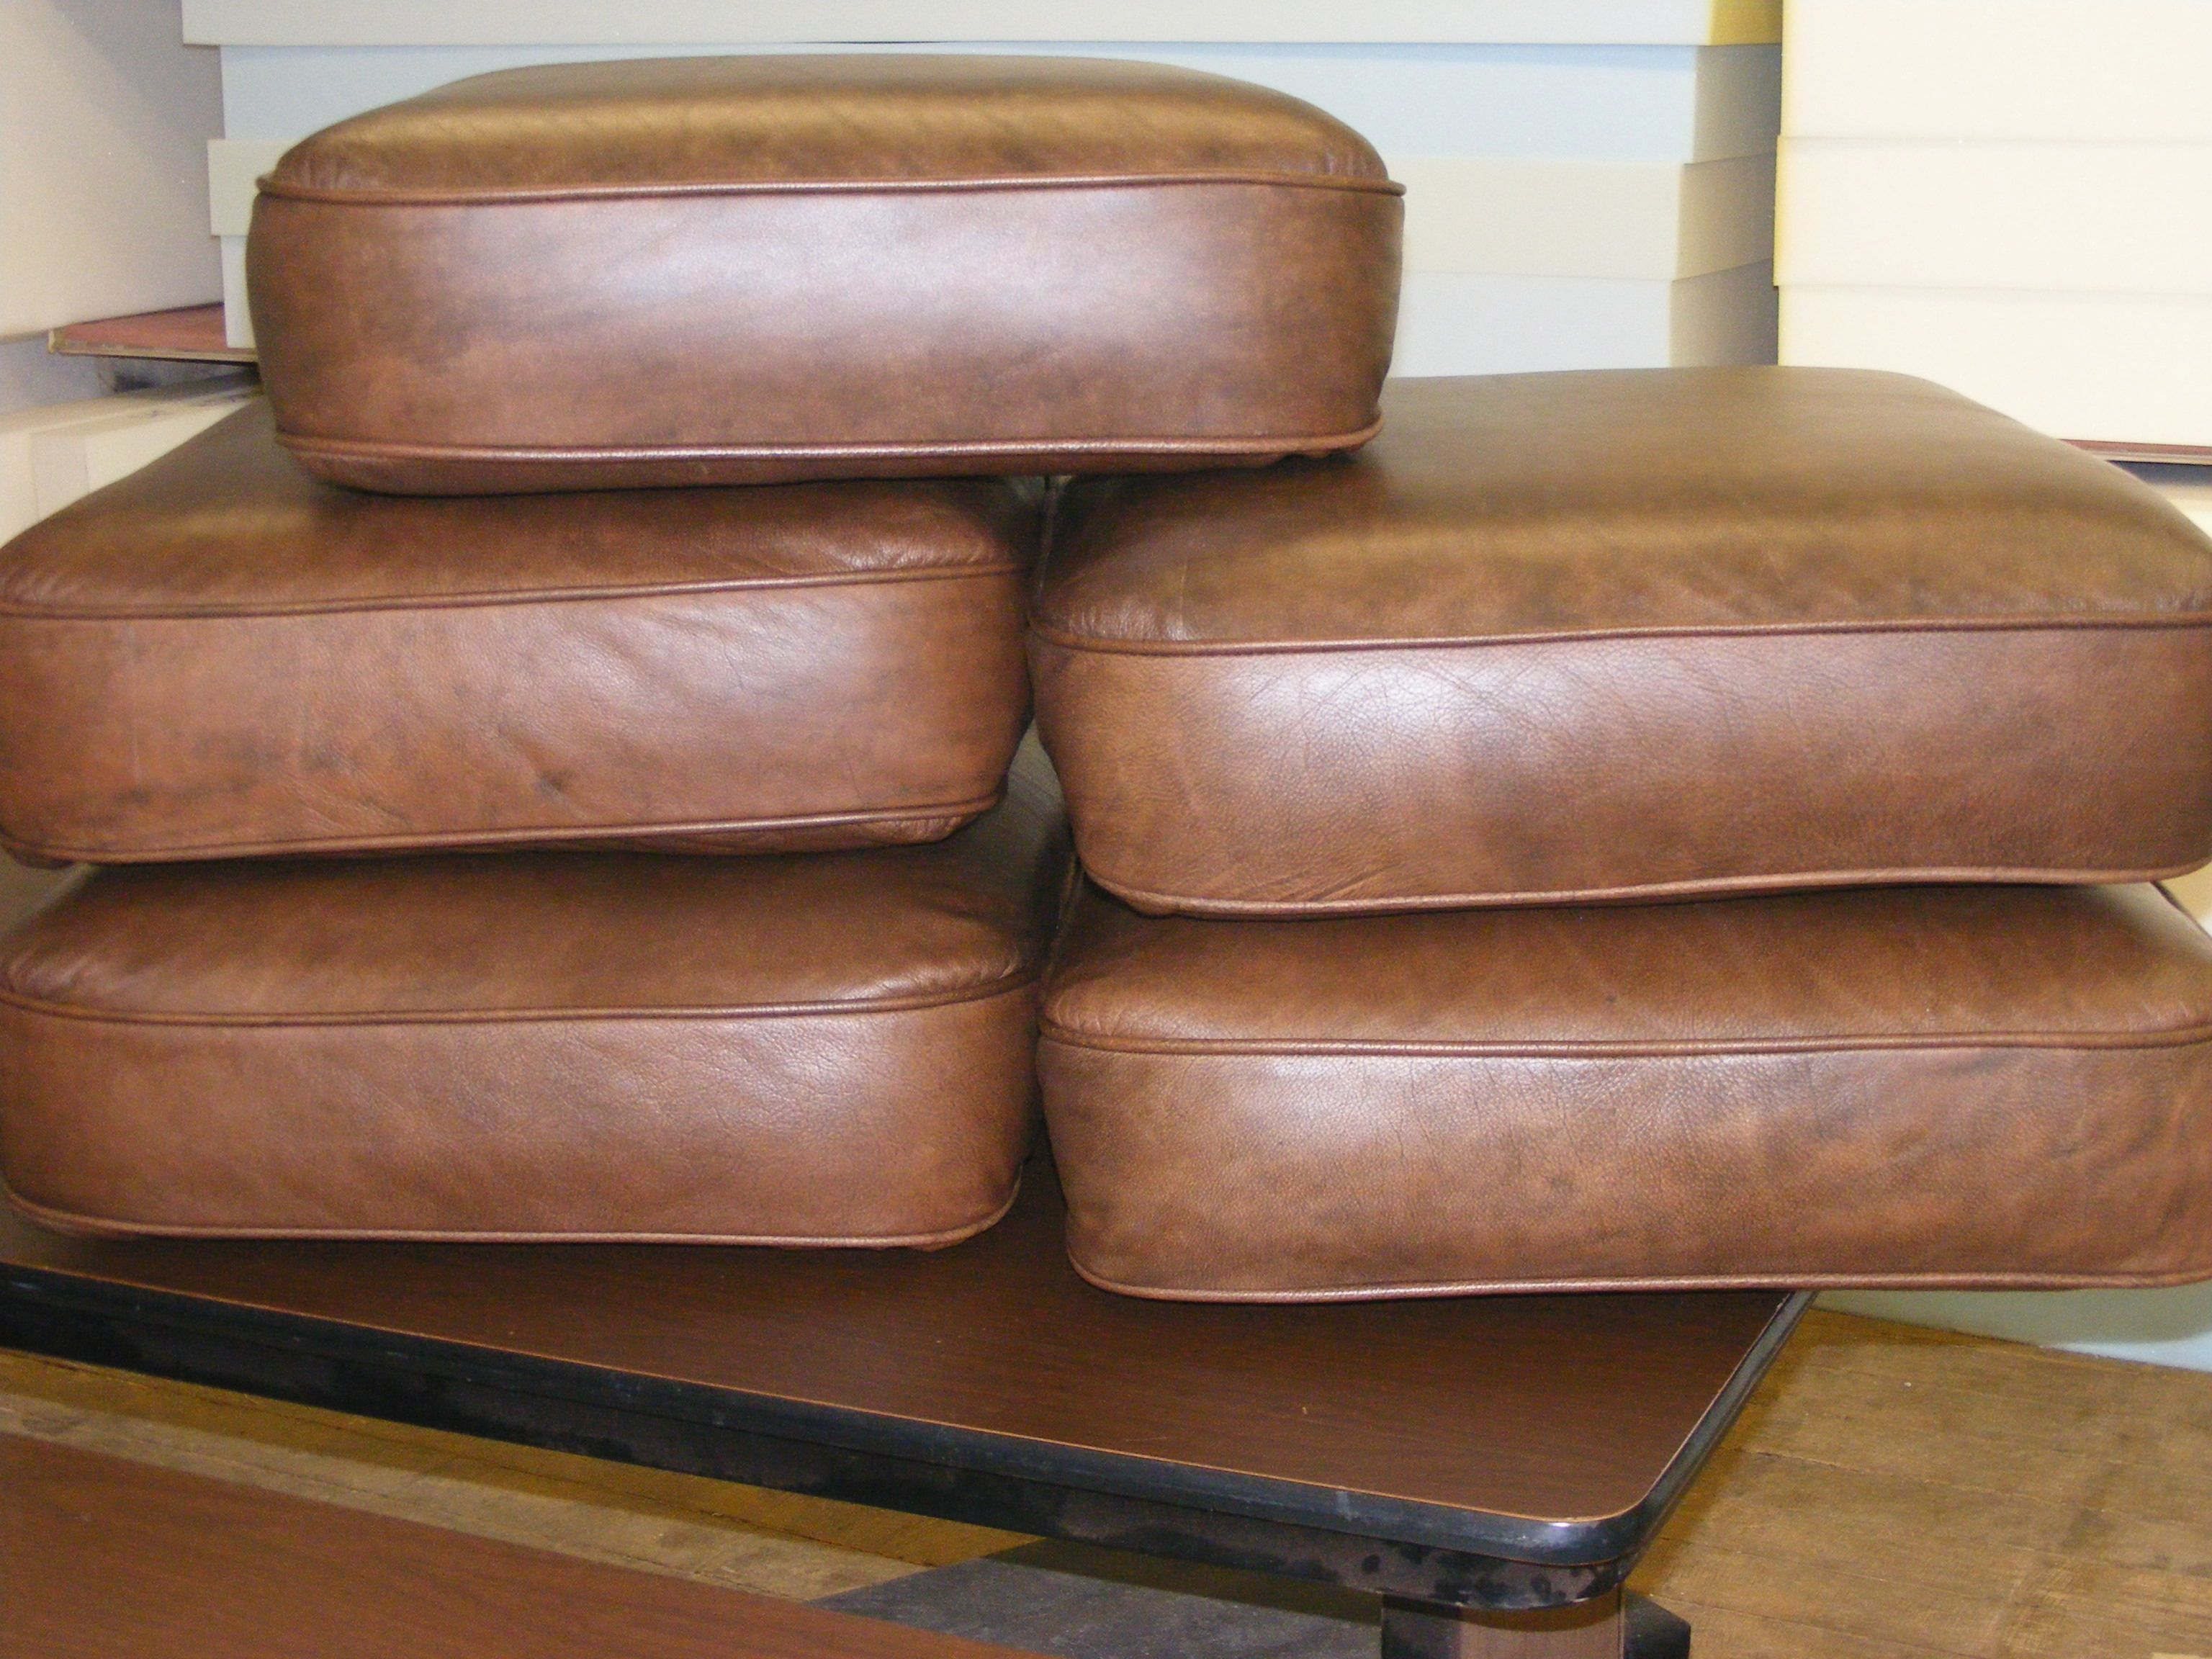 10 Leather Sofa Cushion Covers Replacement Most Incredible And Stunning Cushions On Sofa Wooden Sofa Sofa Seat Cushions